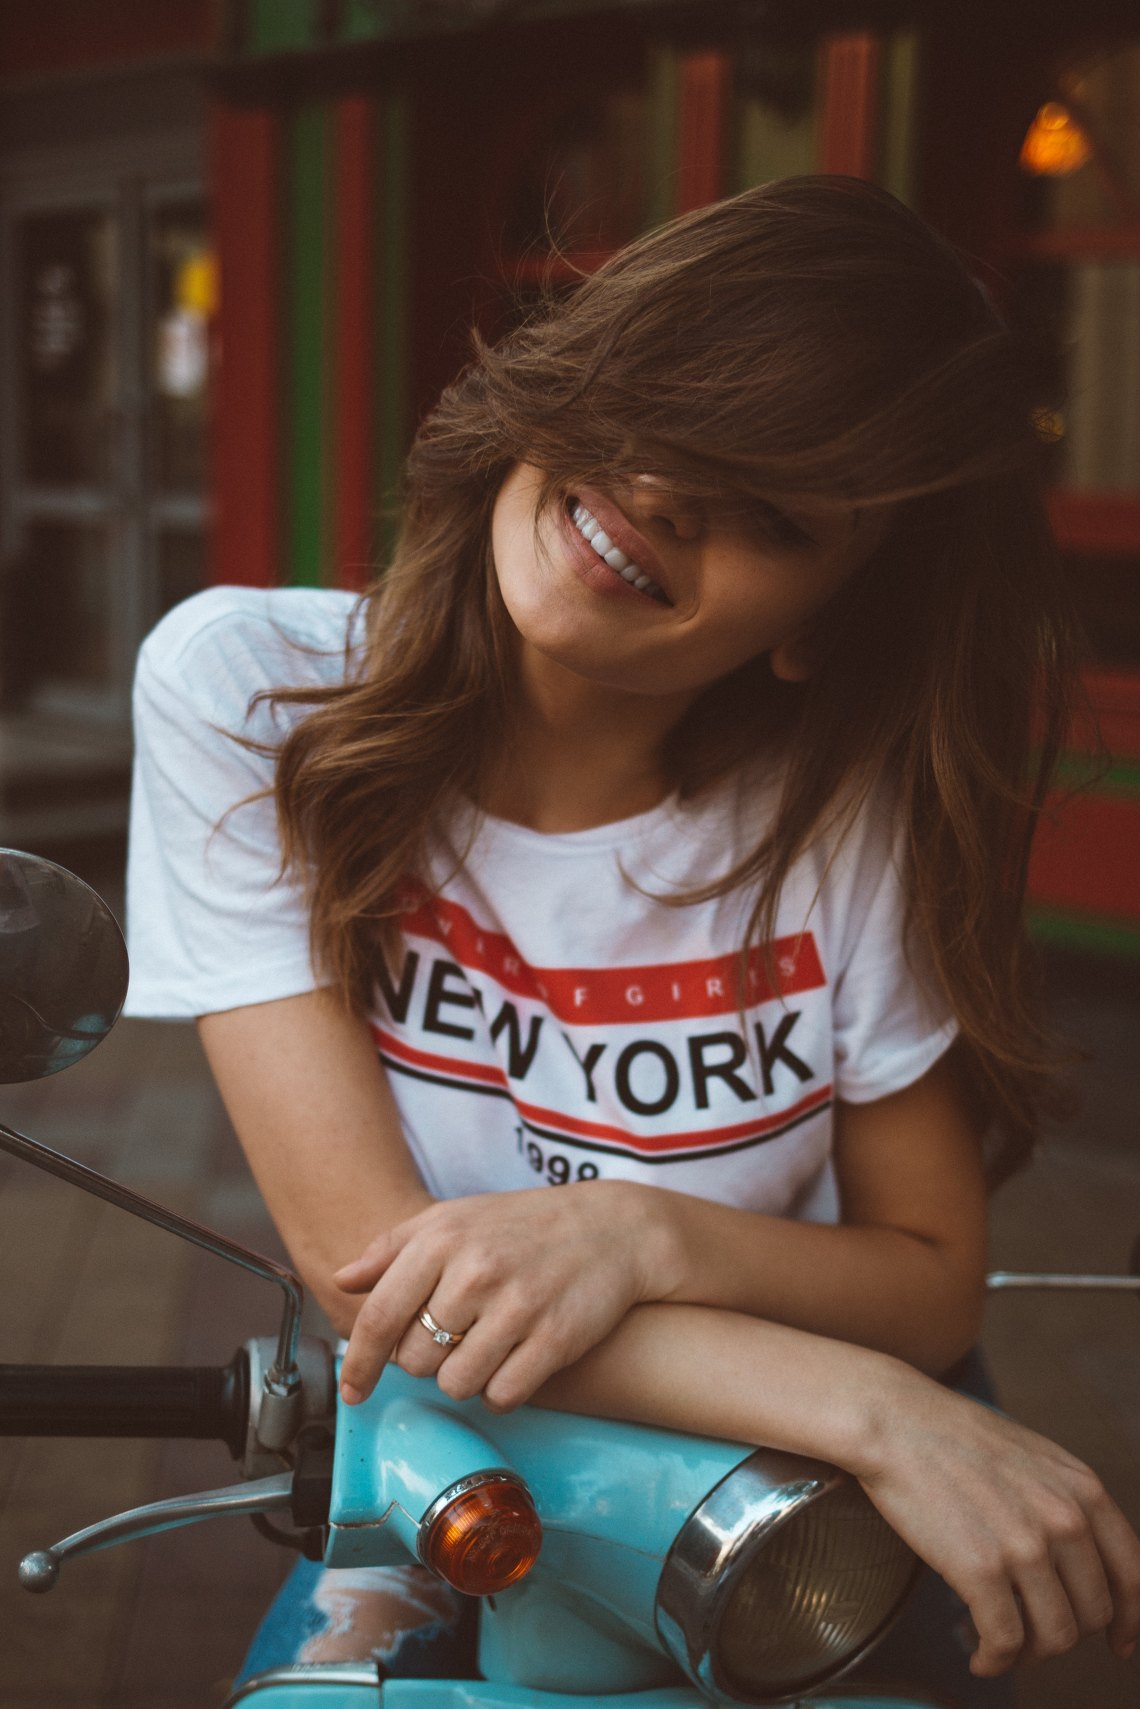 girl laughing in a new york shirt